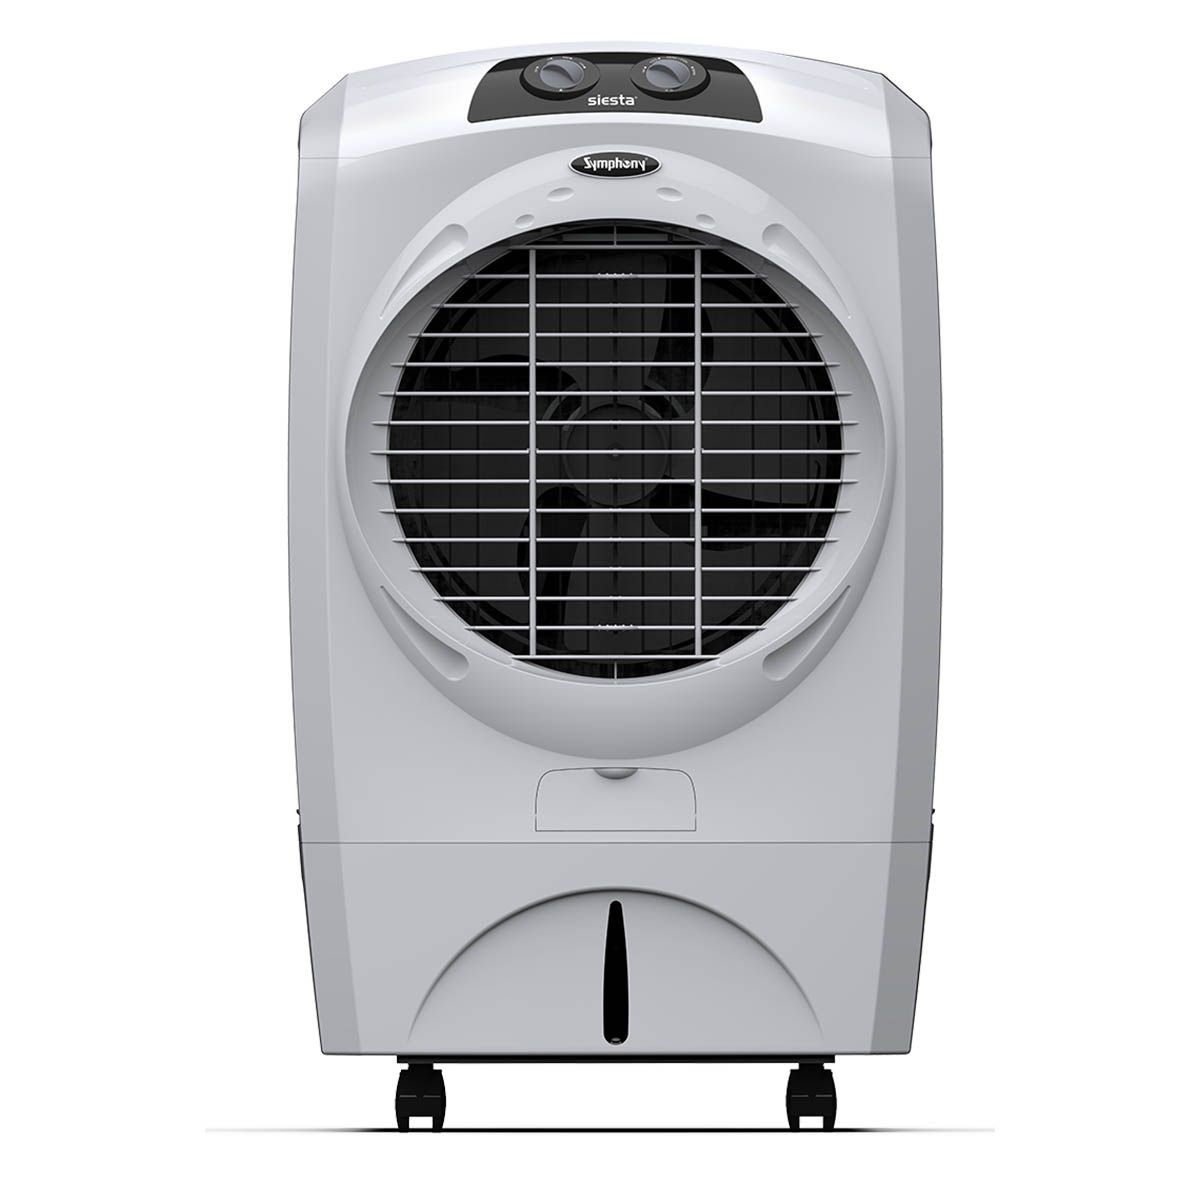 Symphony Siesta Desert Air Cooler 45-litres with Cool Flow Dispenser